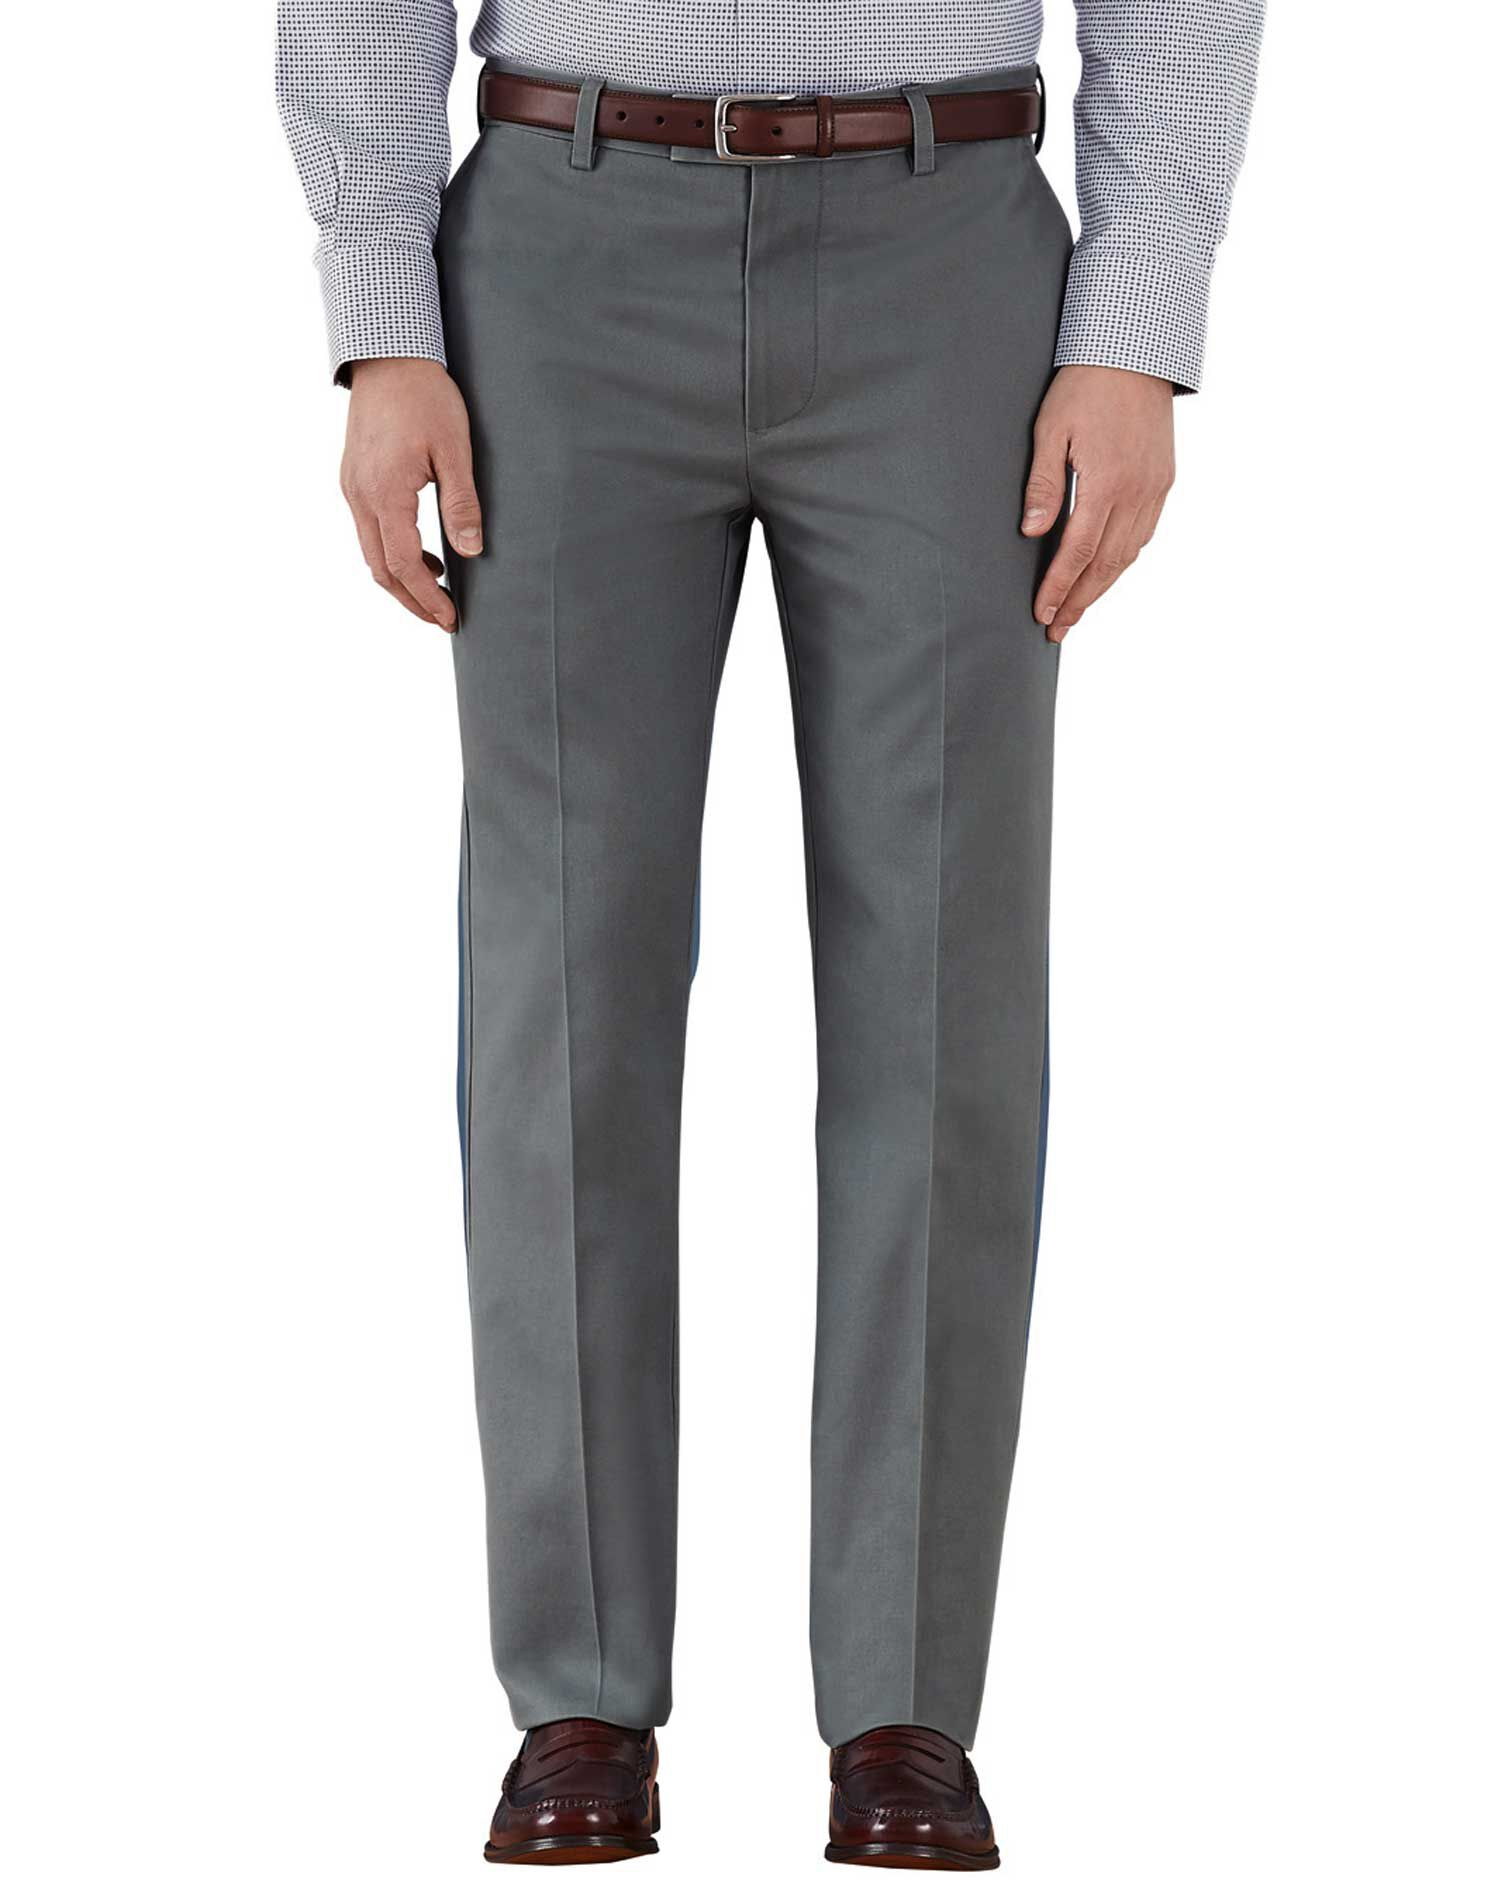 Grey Slim Fit Flat Front Non-Iron Cotton Chino Trousers Size W30 L34 by Charles Tyrwhitt